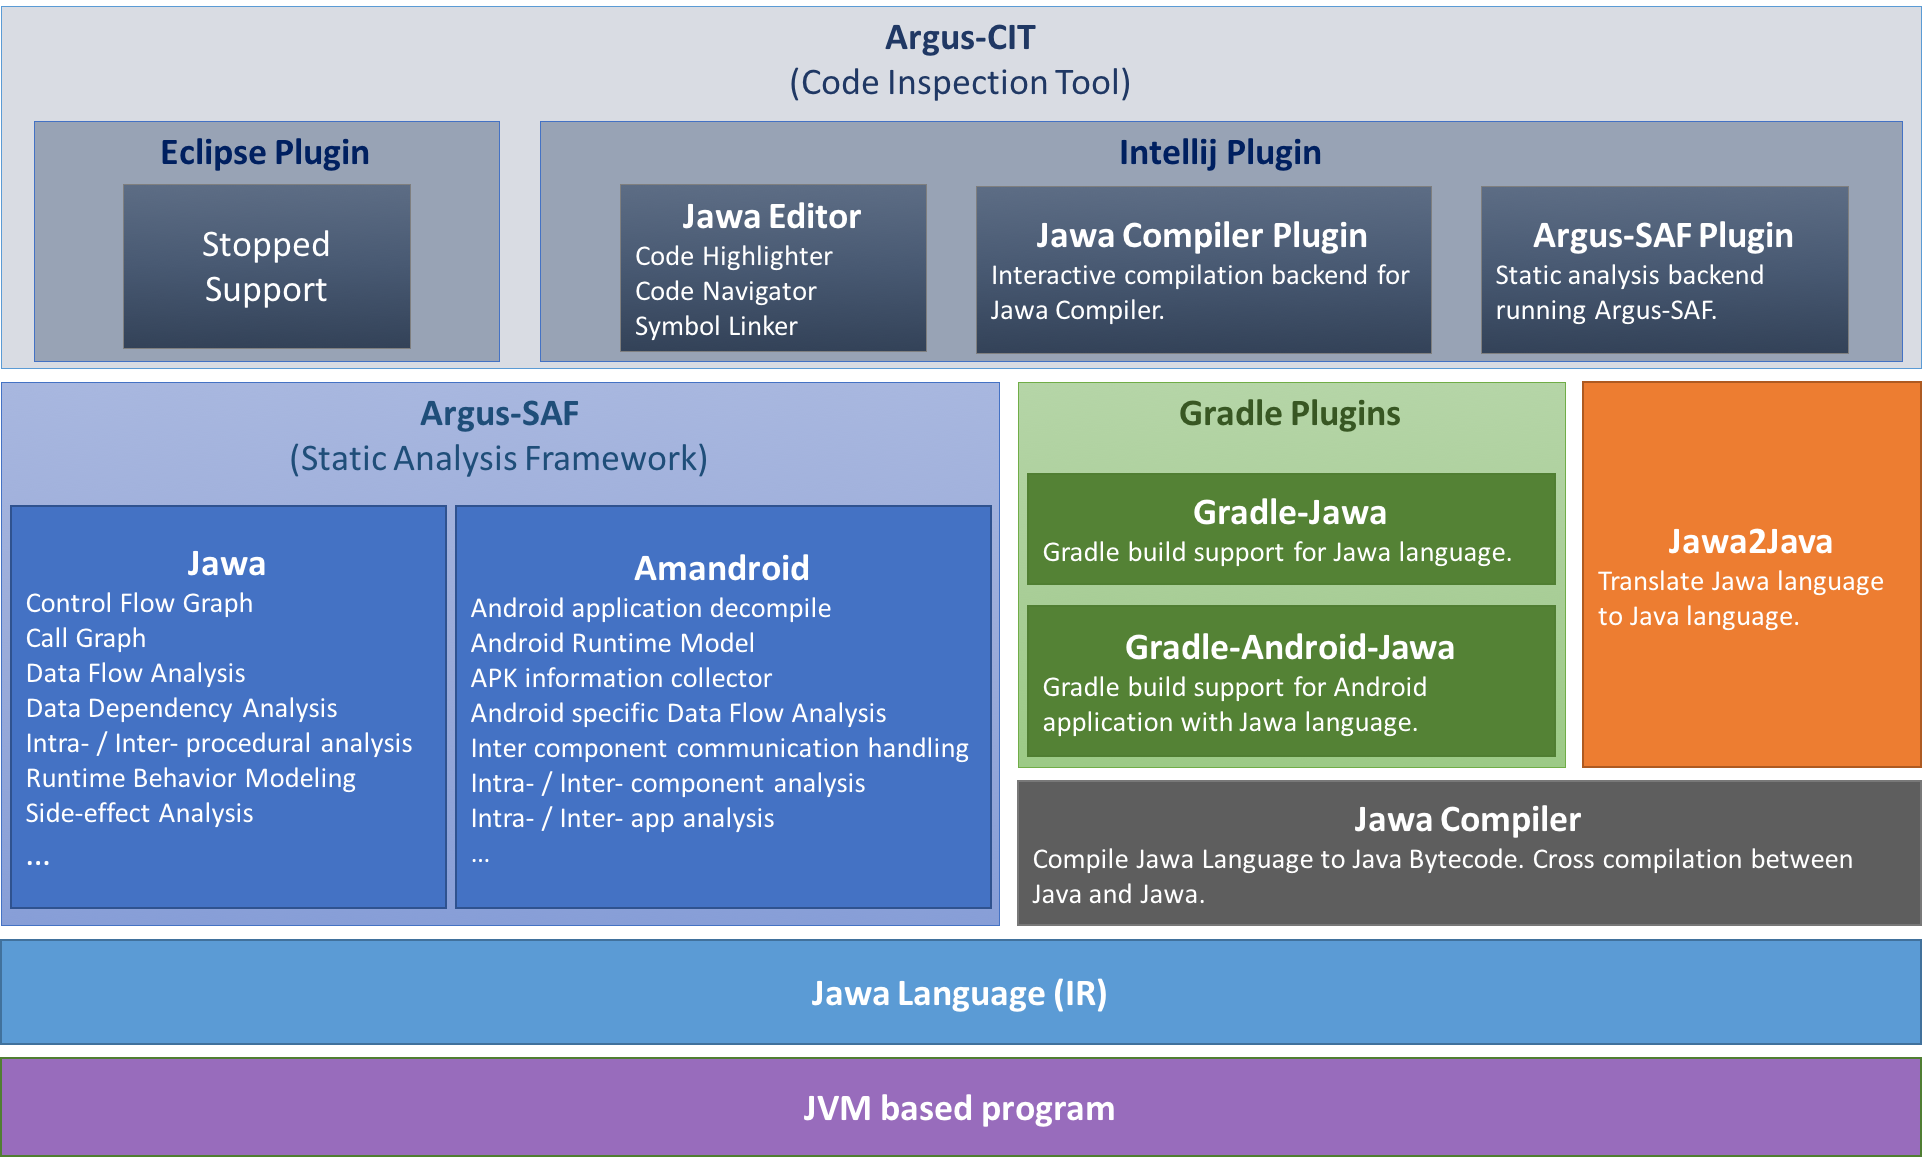 Figure: Argus-PAG products stack.